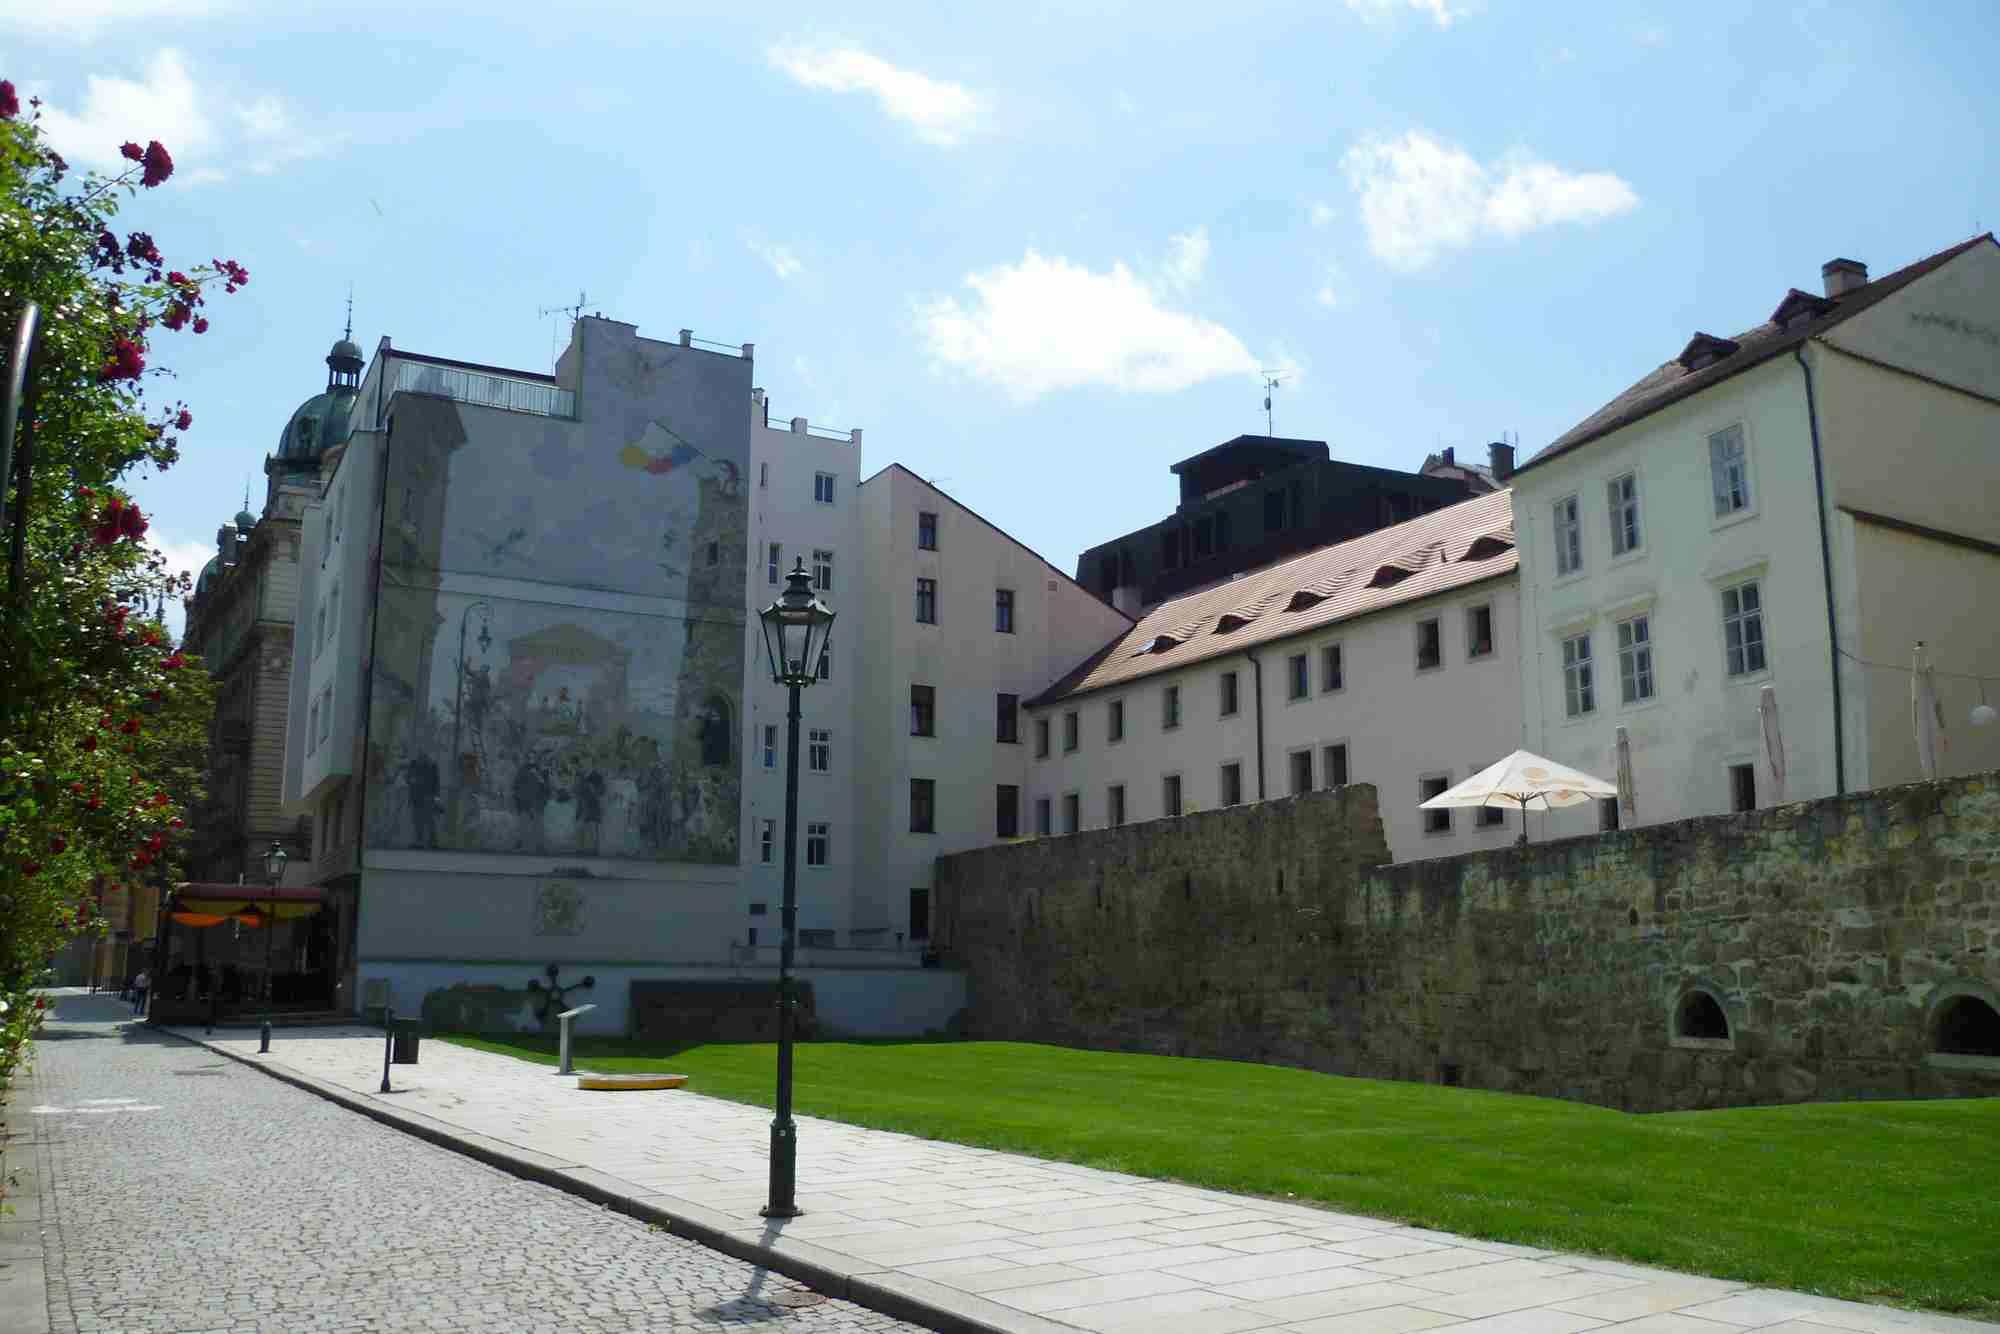 Pilsen tourists attractions: historic walls in Plzeň City Center.